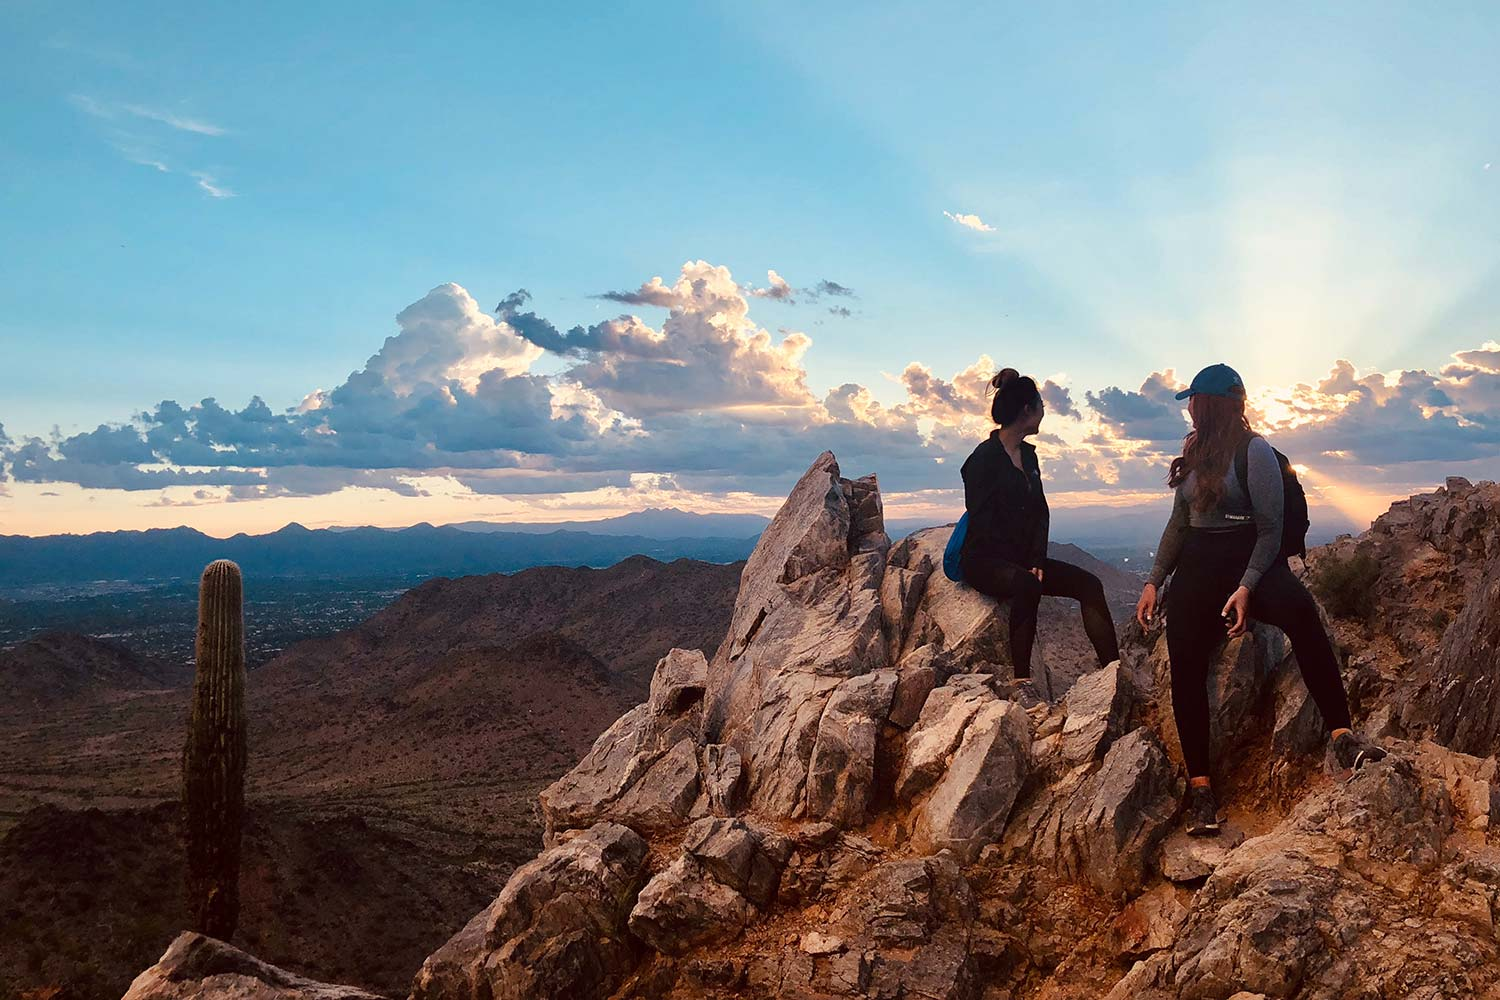 two women sit on rocks at the top of the mountain they've hiked up